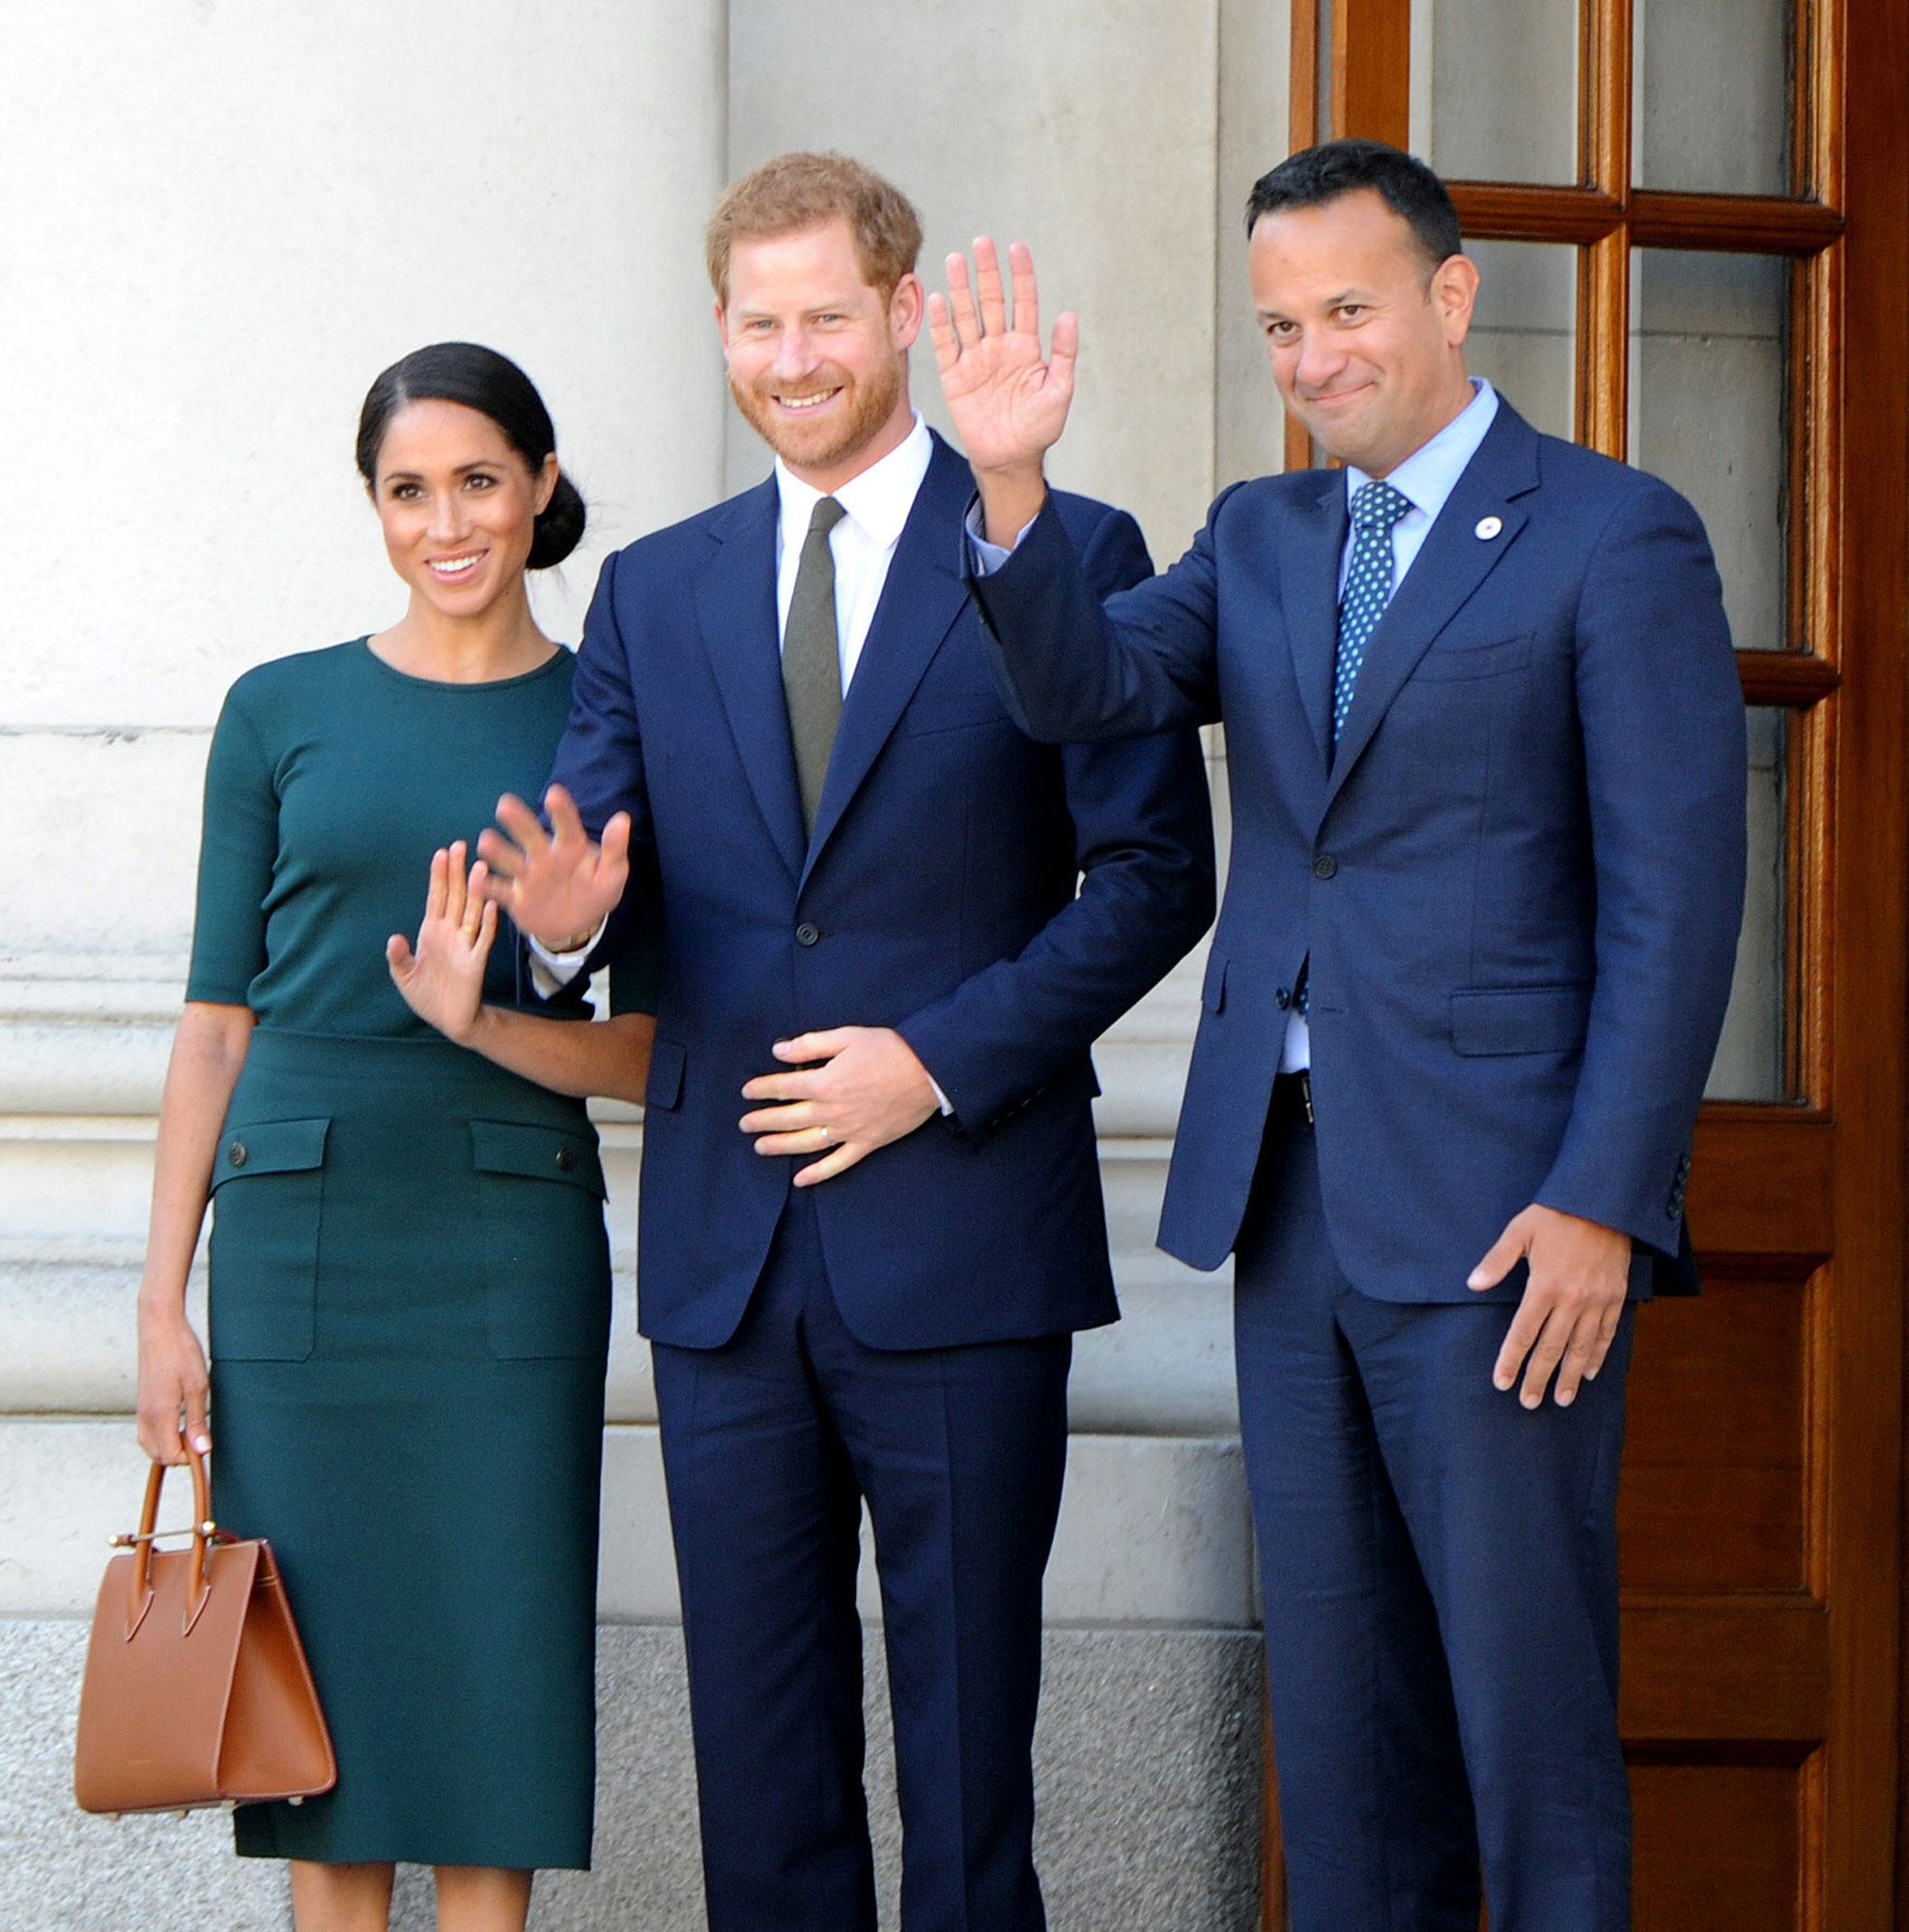 Duke and Duchess of Sussex visit, Dublin, Ireland - 10 Jul 2018